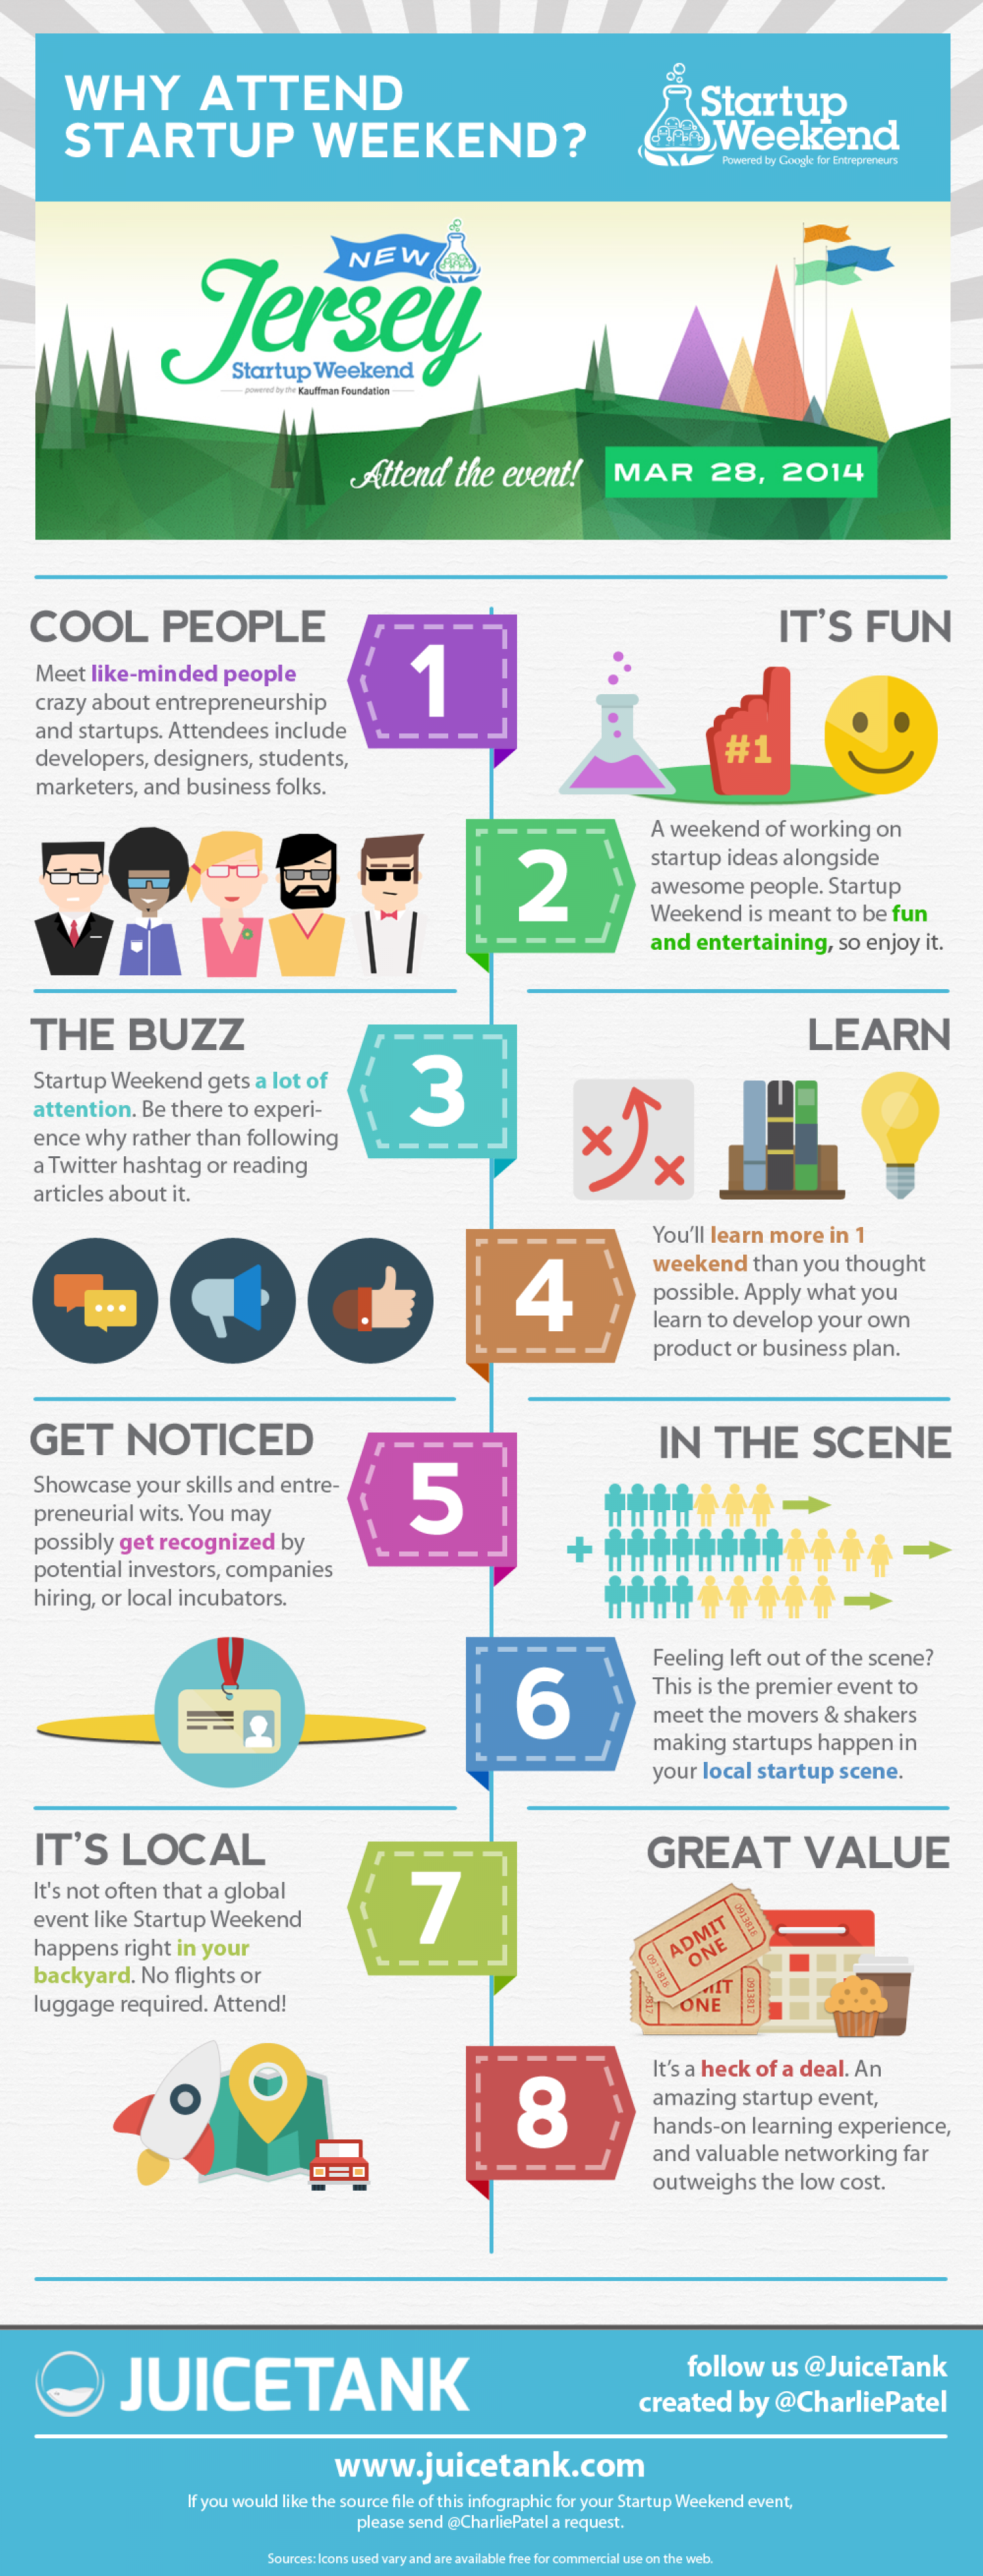 Why Attend Startup Weekend? Infographic